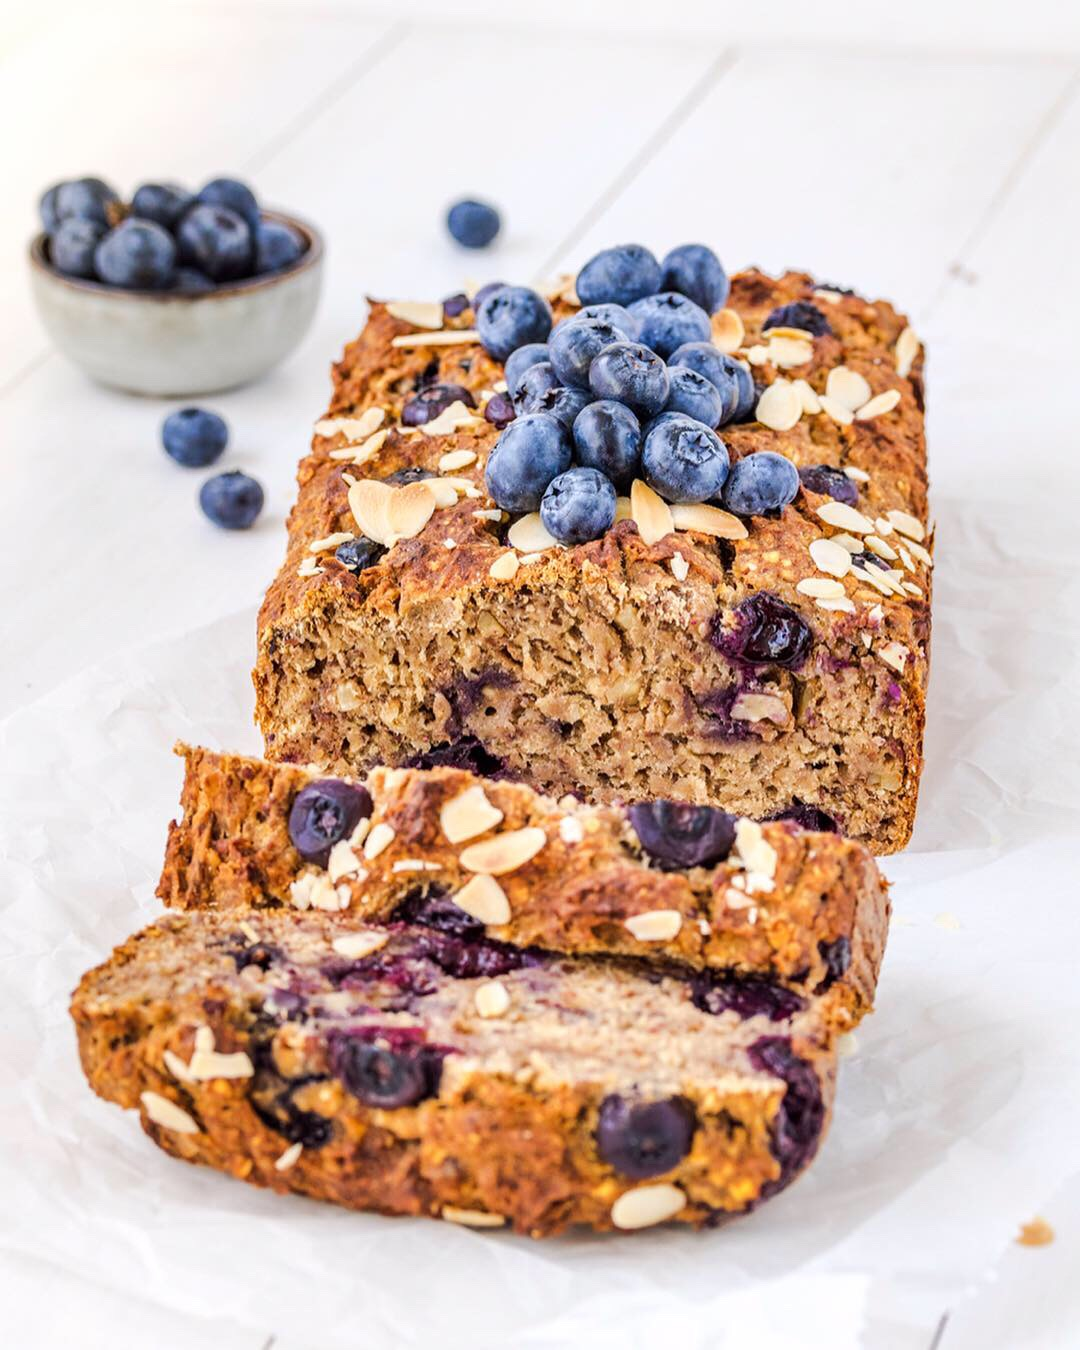 Vegan Banana Bread (sugar-free & oil-free)